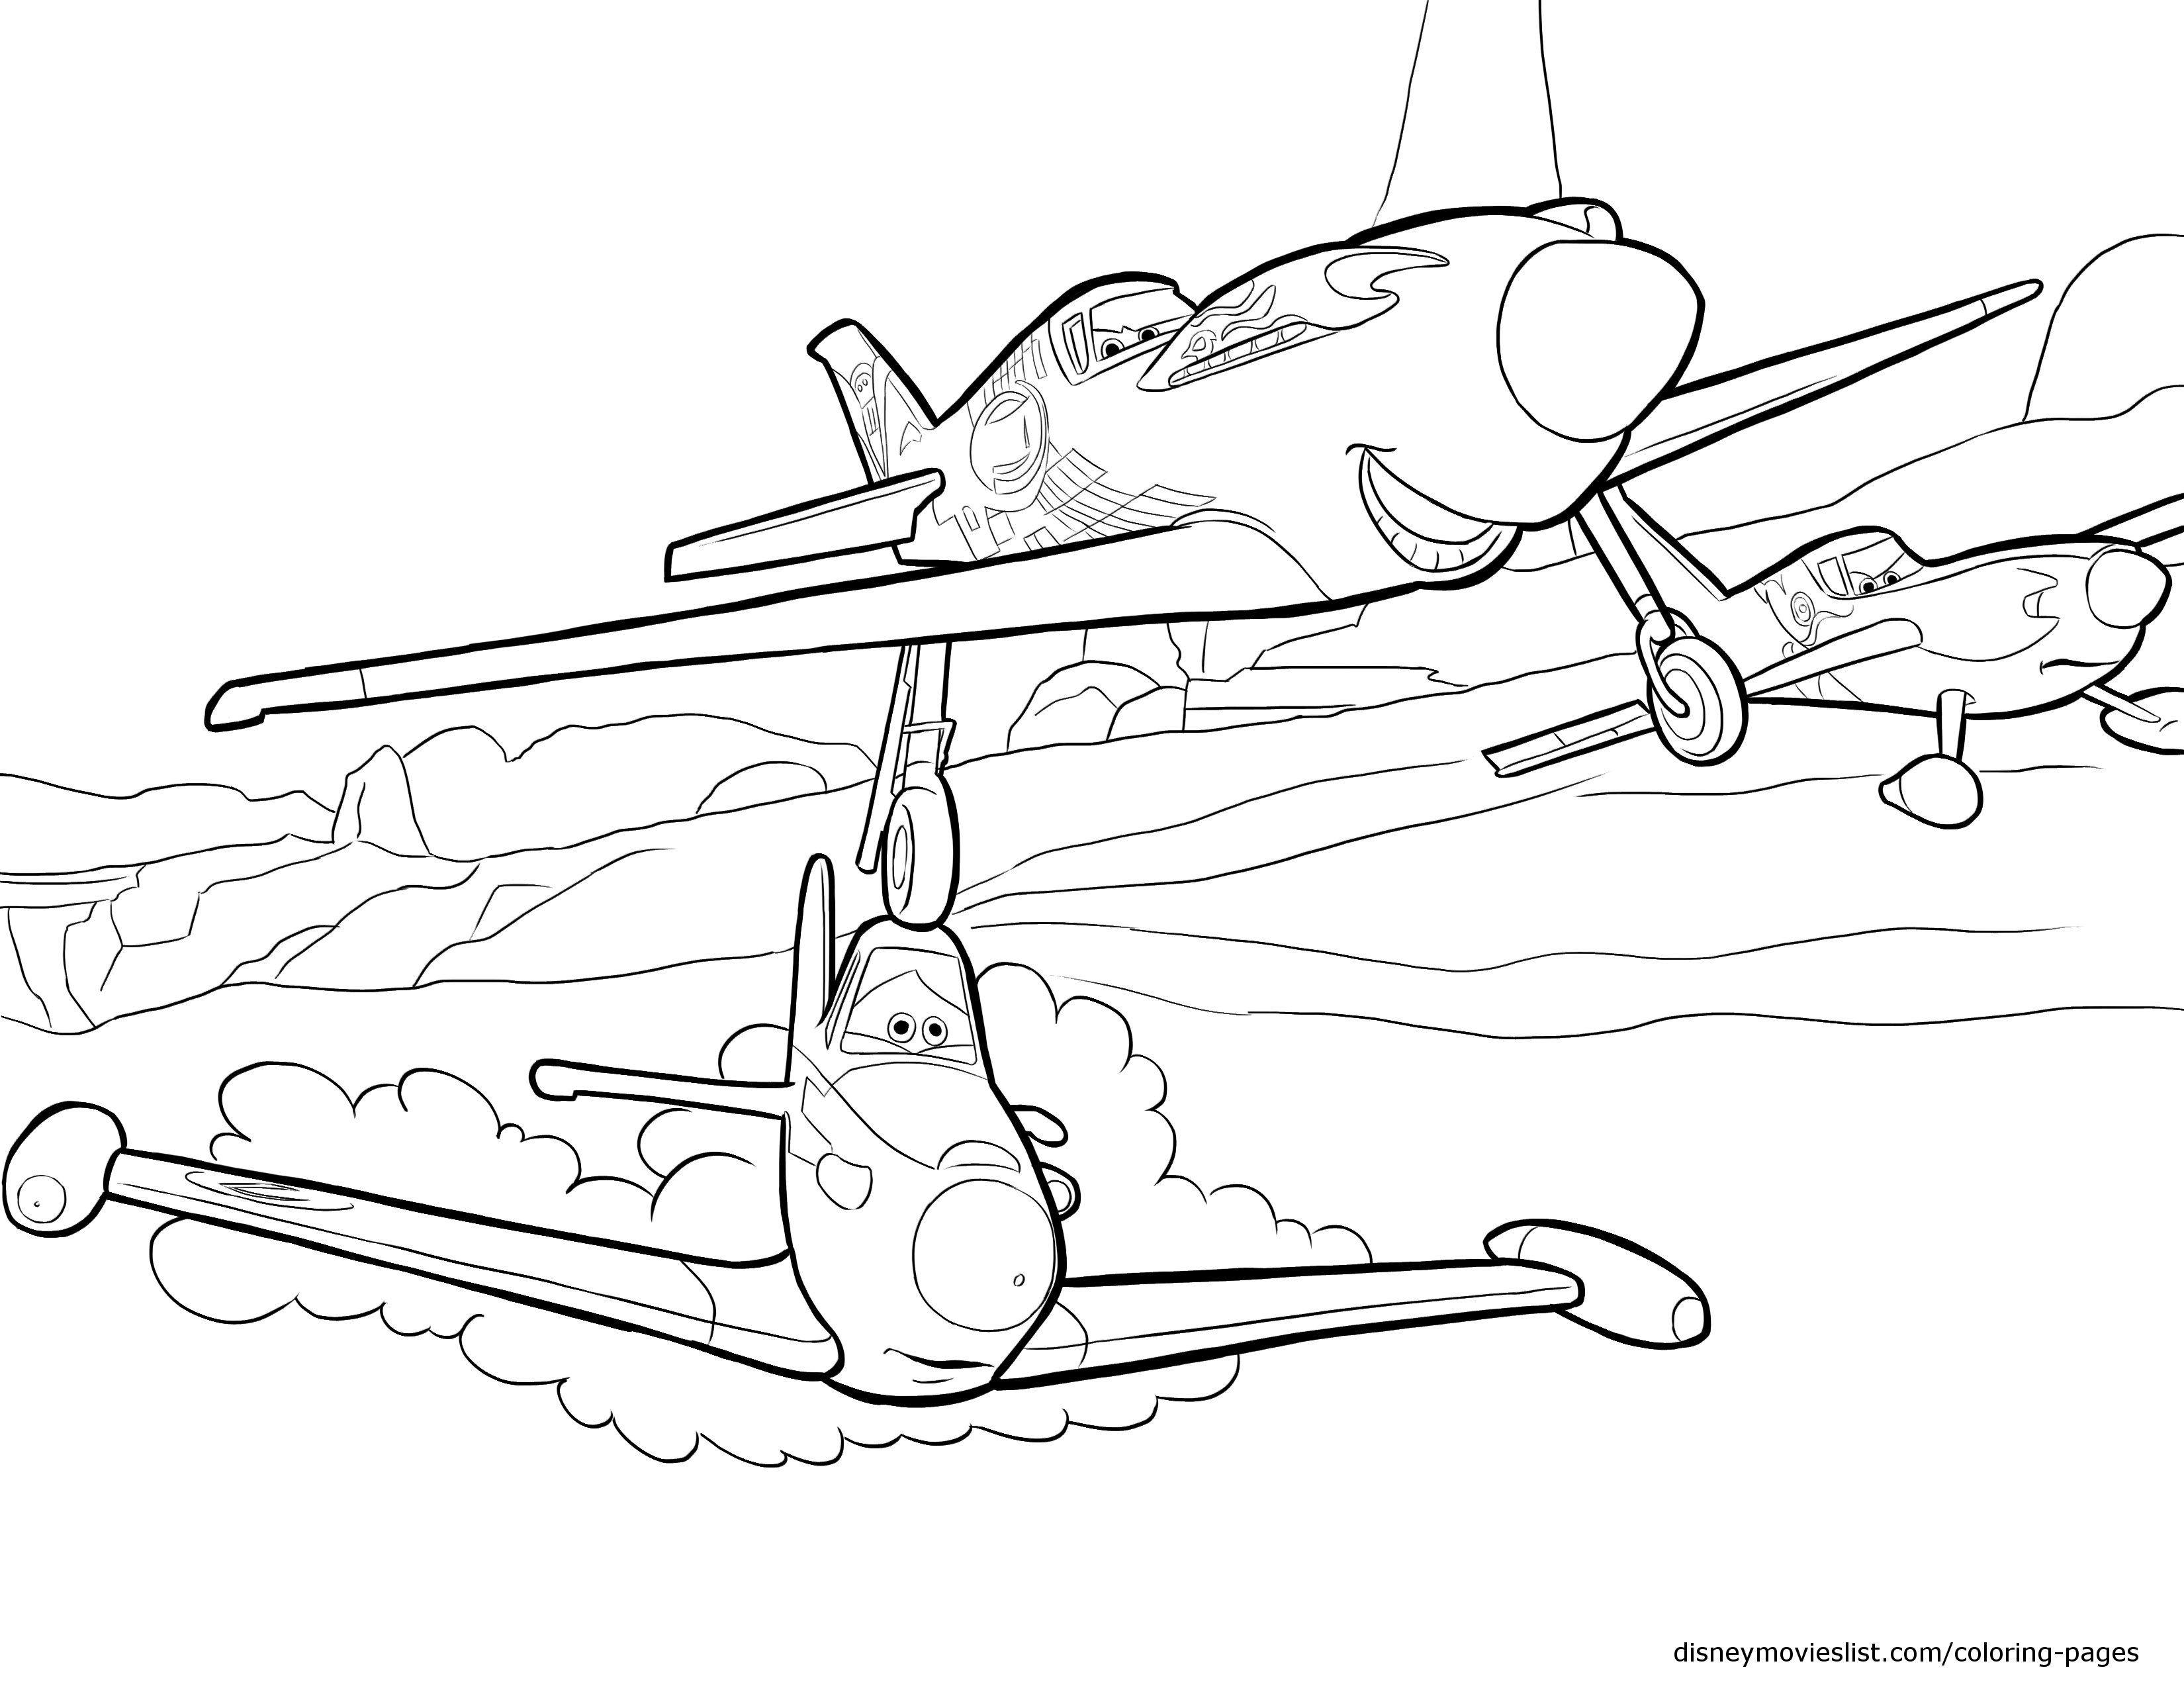 Disneymovieslist Coloring Pages Pages 8 Boys